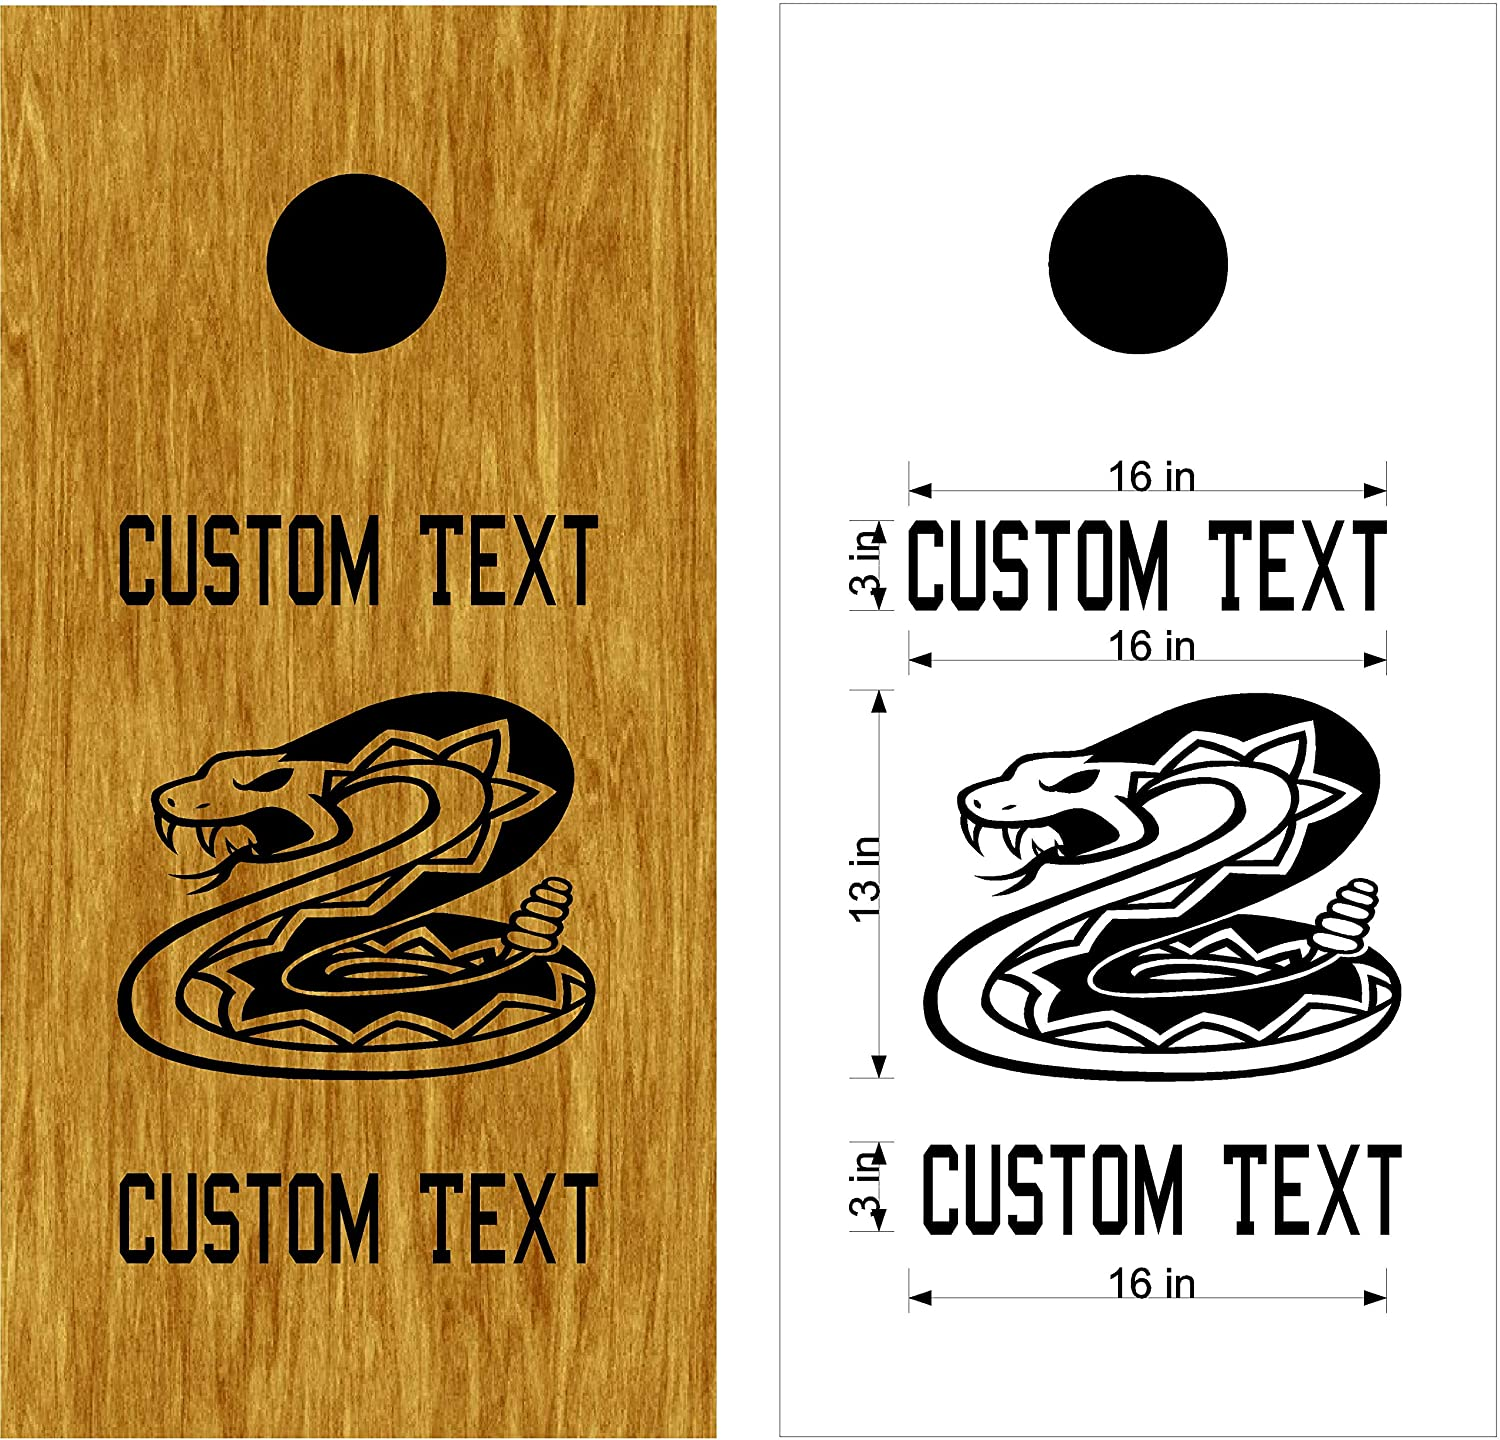 Rattle snakes mascot sports team cornhole board decals stickers enough both boards wedding tailgating camping games do it yourself designs custom corn toss